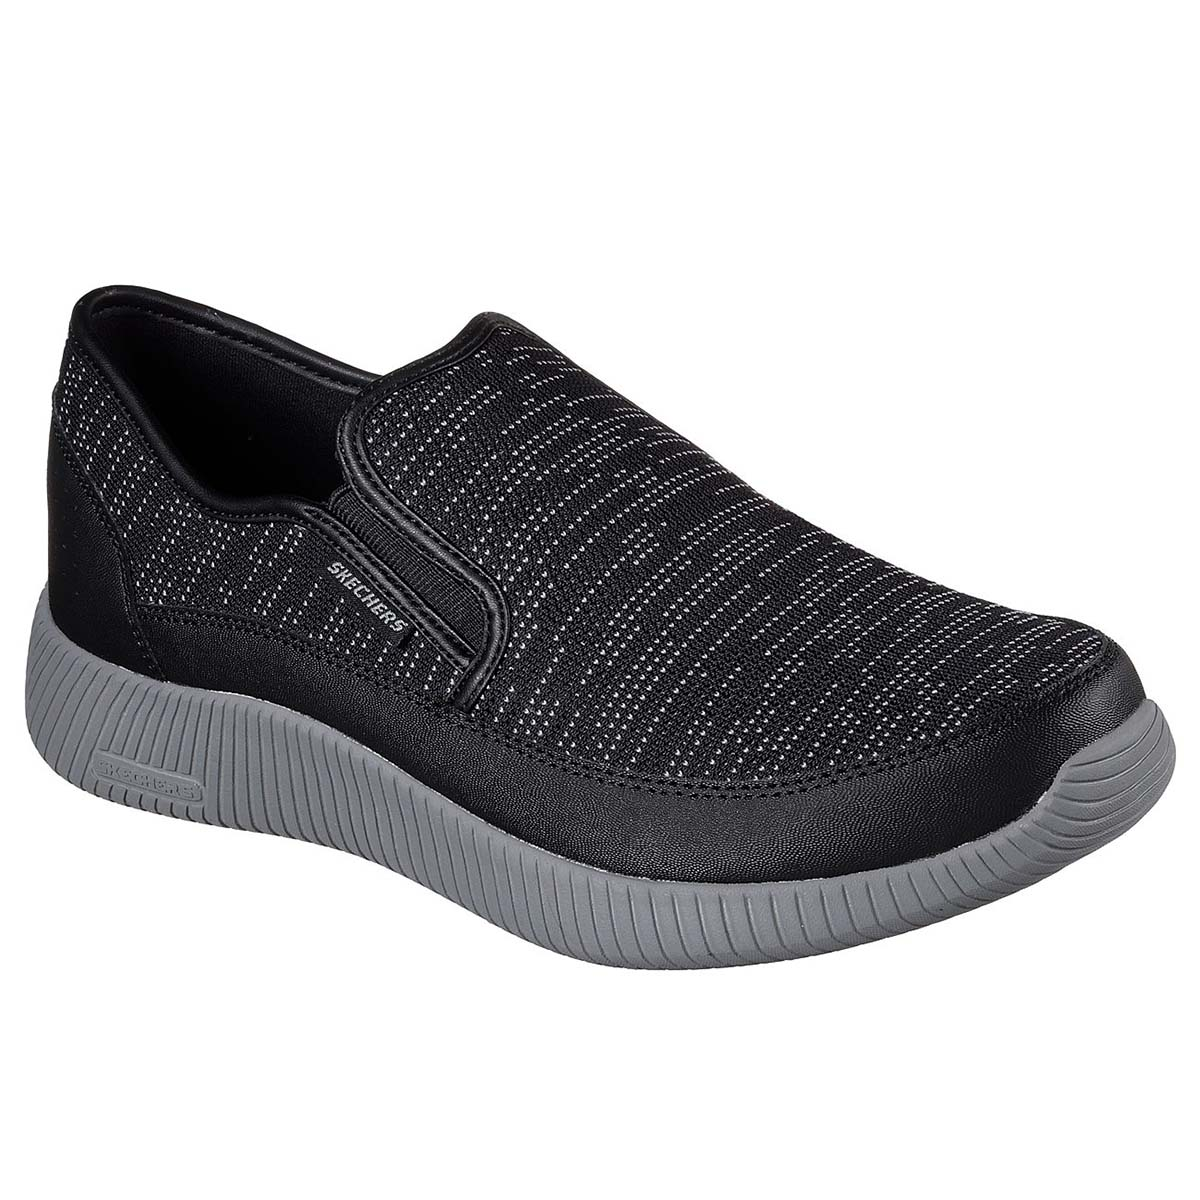 skechers shoes air cooled memory foam